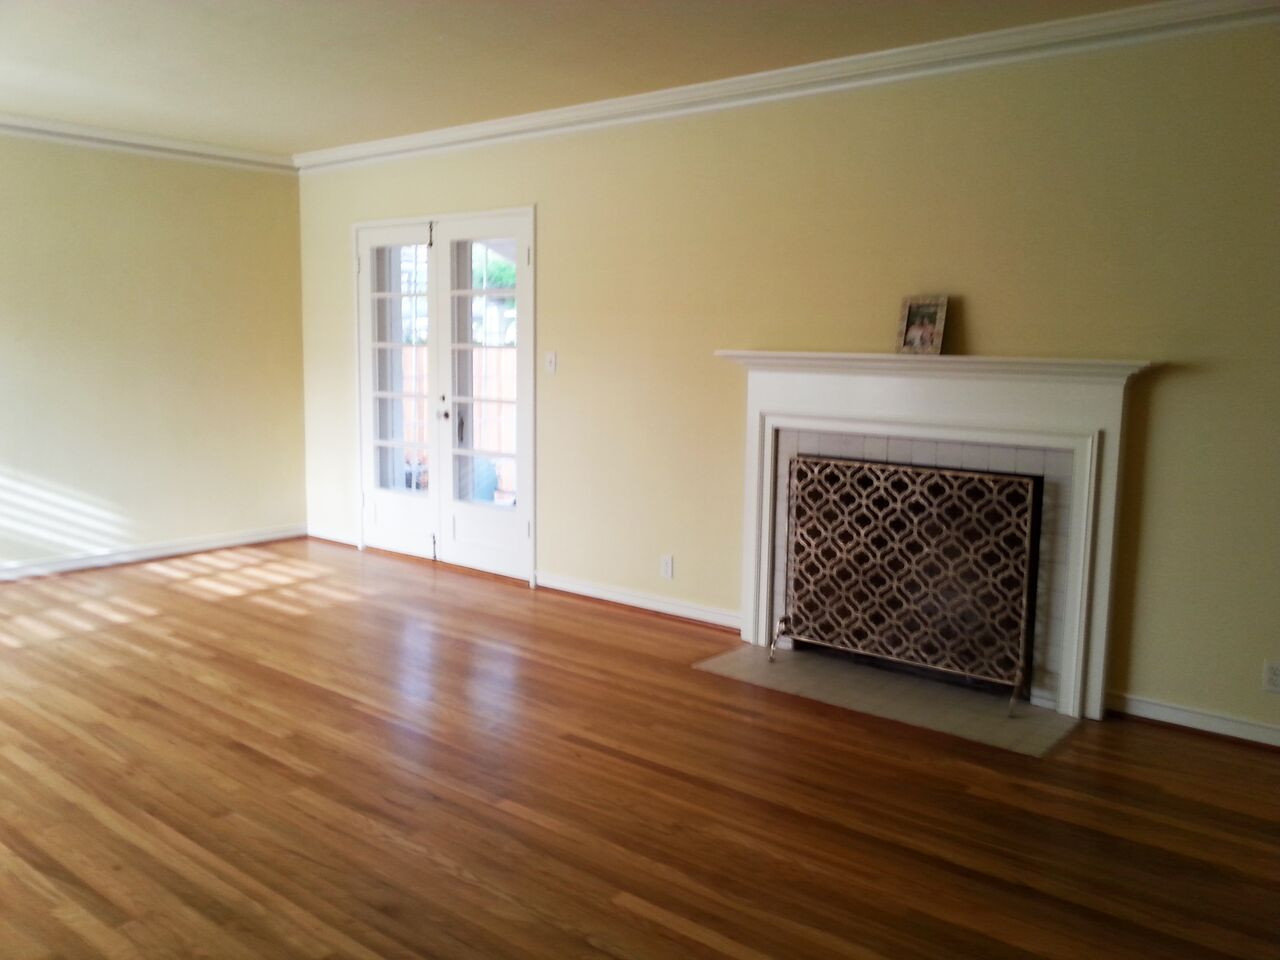 16 Lovable Hardwood Floor Refinishing Modesto Ca Unique Flooring